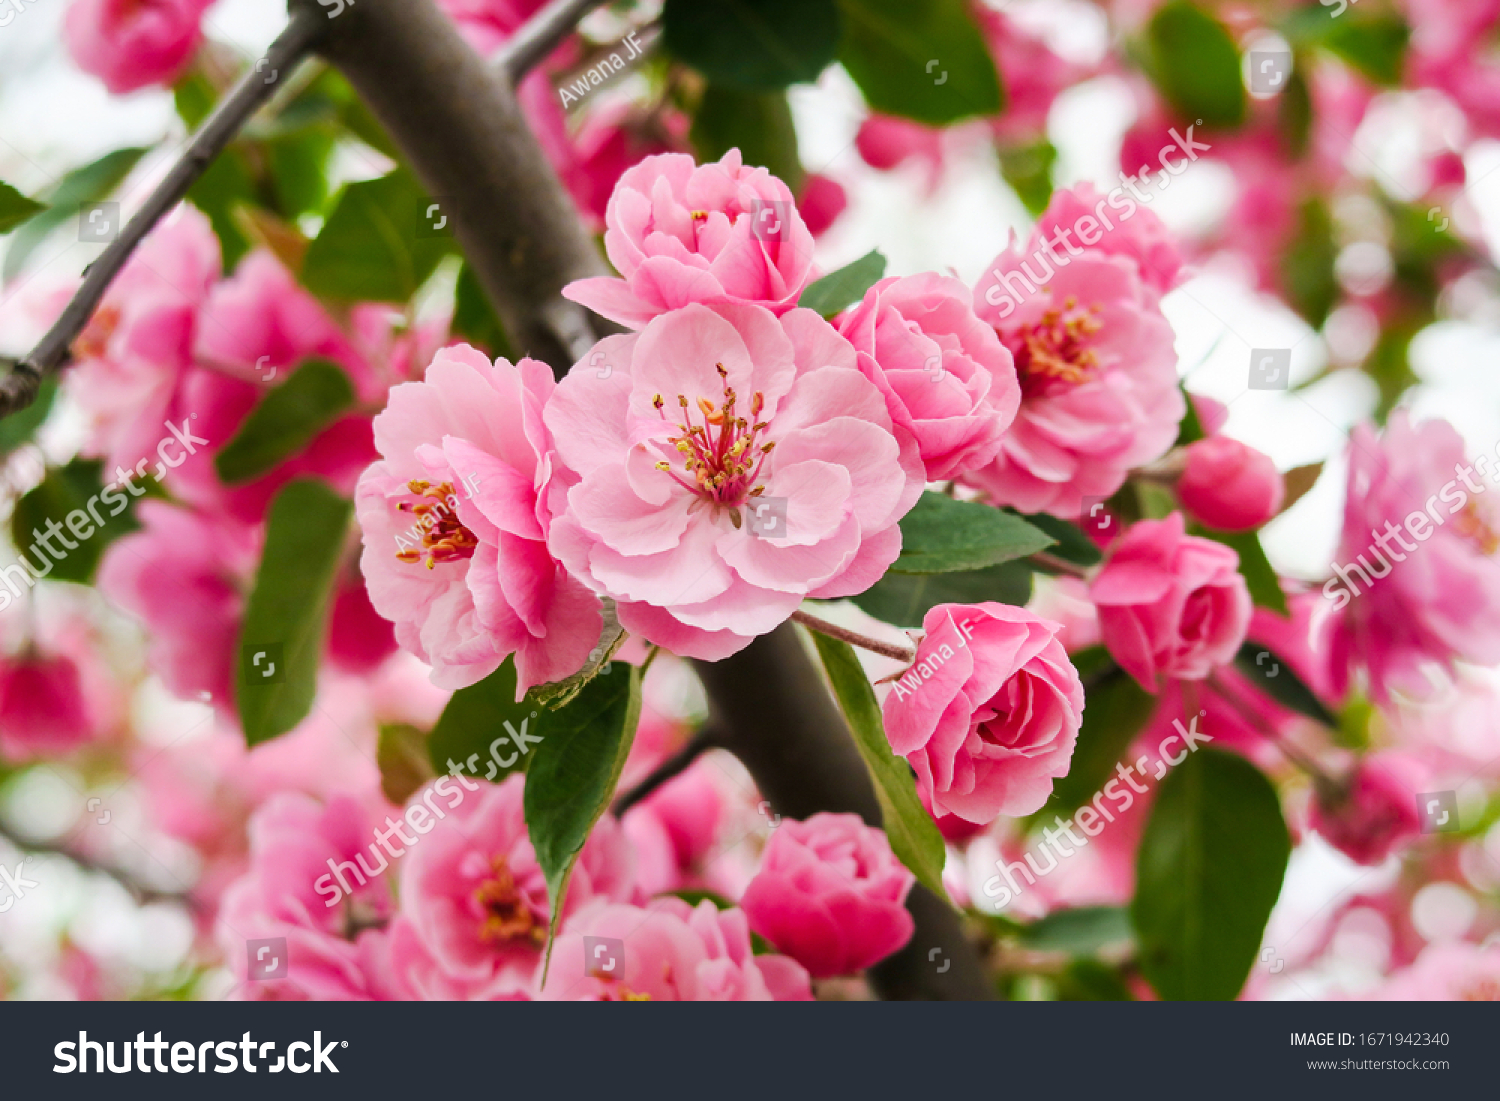 Close up view of beautiful cherry blossom flowers